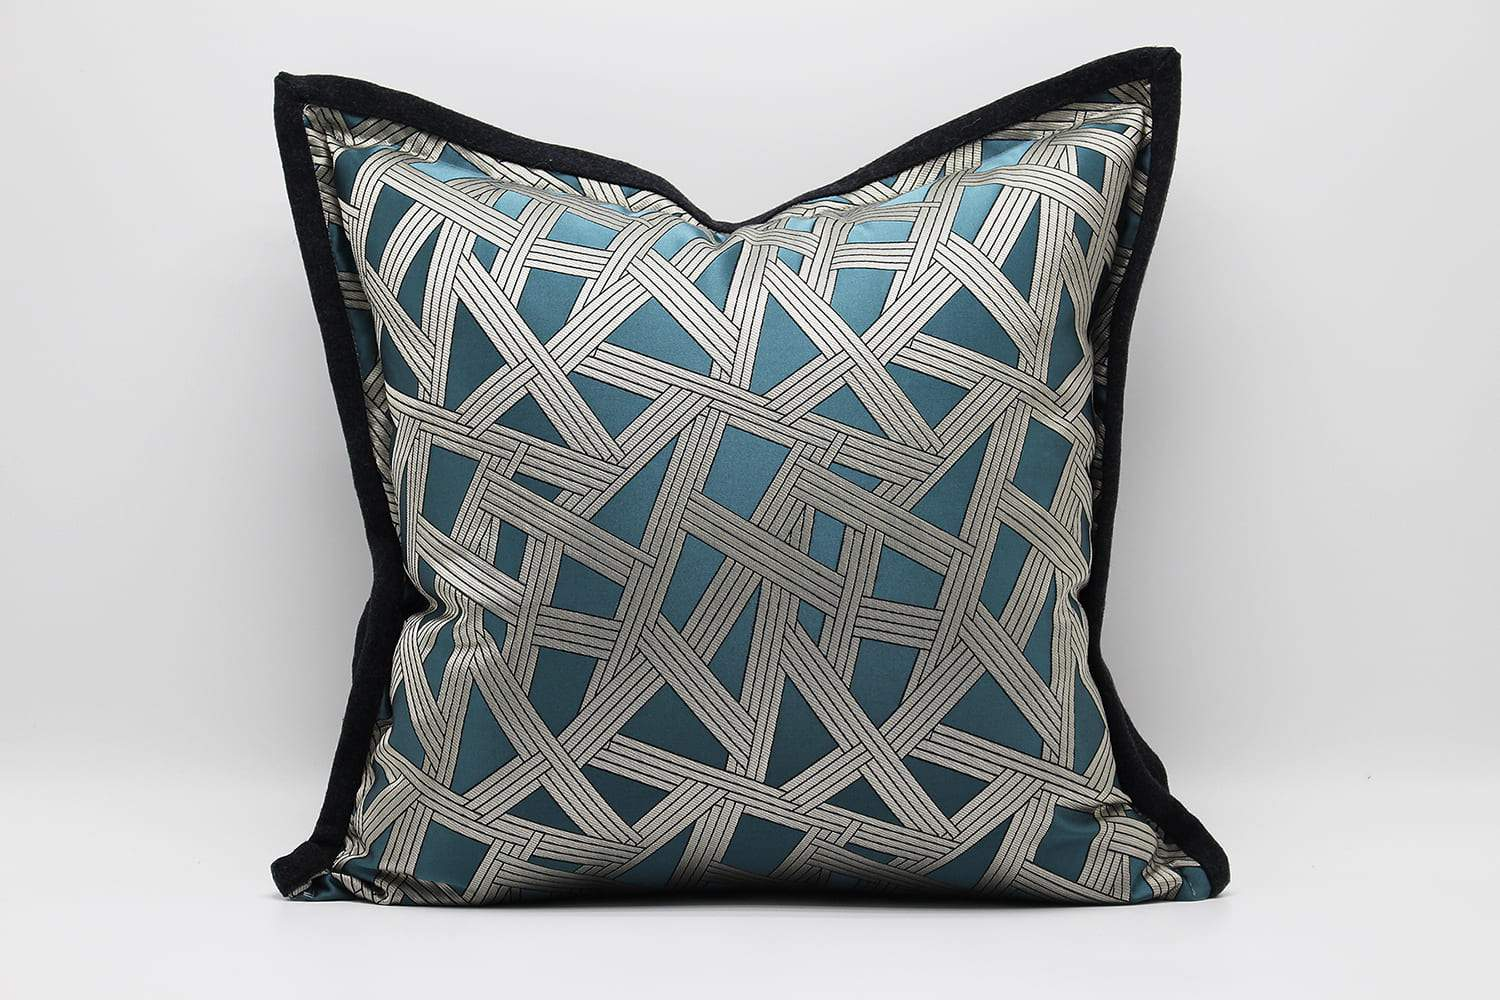 CROSS LUXURY BLUE PILLOWS AND CUSHION- ANGIE HOMES ANGIE HOMES